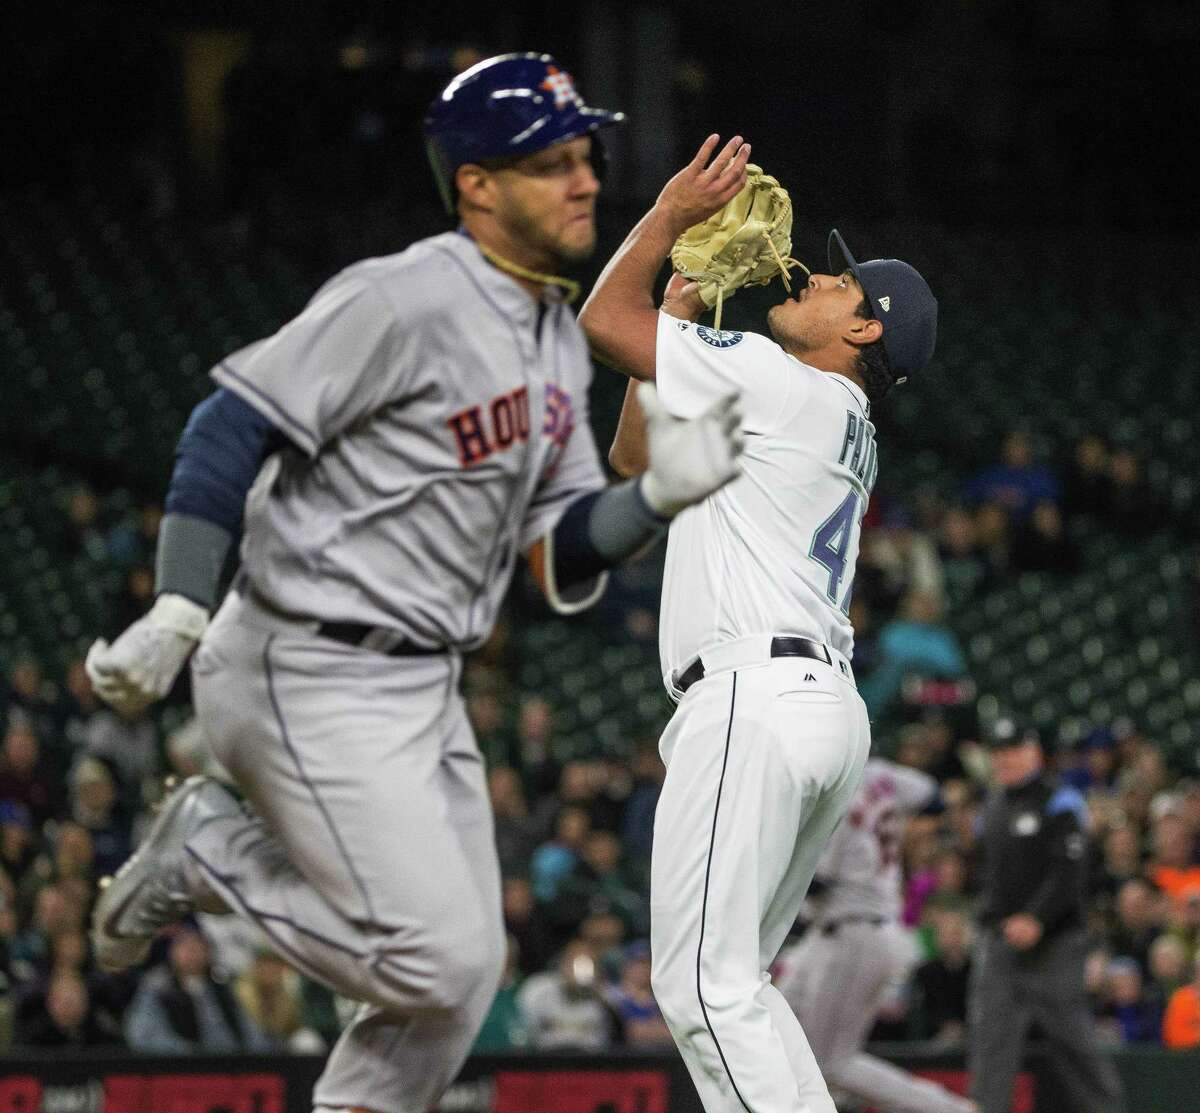 Seattle Mariners reliever James Pazos waits for a high bouncer by the Houston Astros' Yuli Gurriel to come down in the sixth inning at Safeco Field in Seattle on Tuesday, April 11, 2017. The throw to first was too late to get Gurriel.